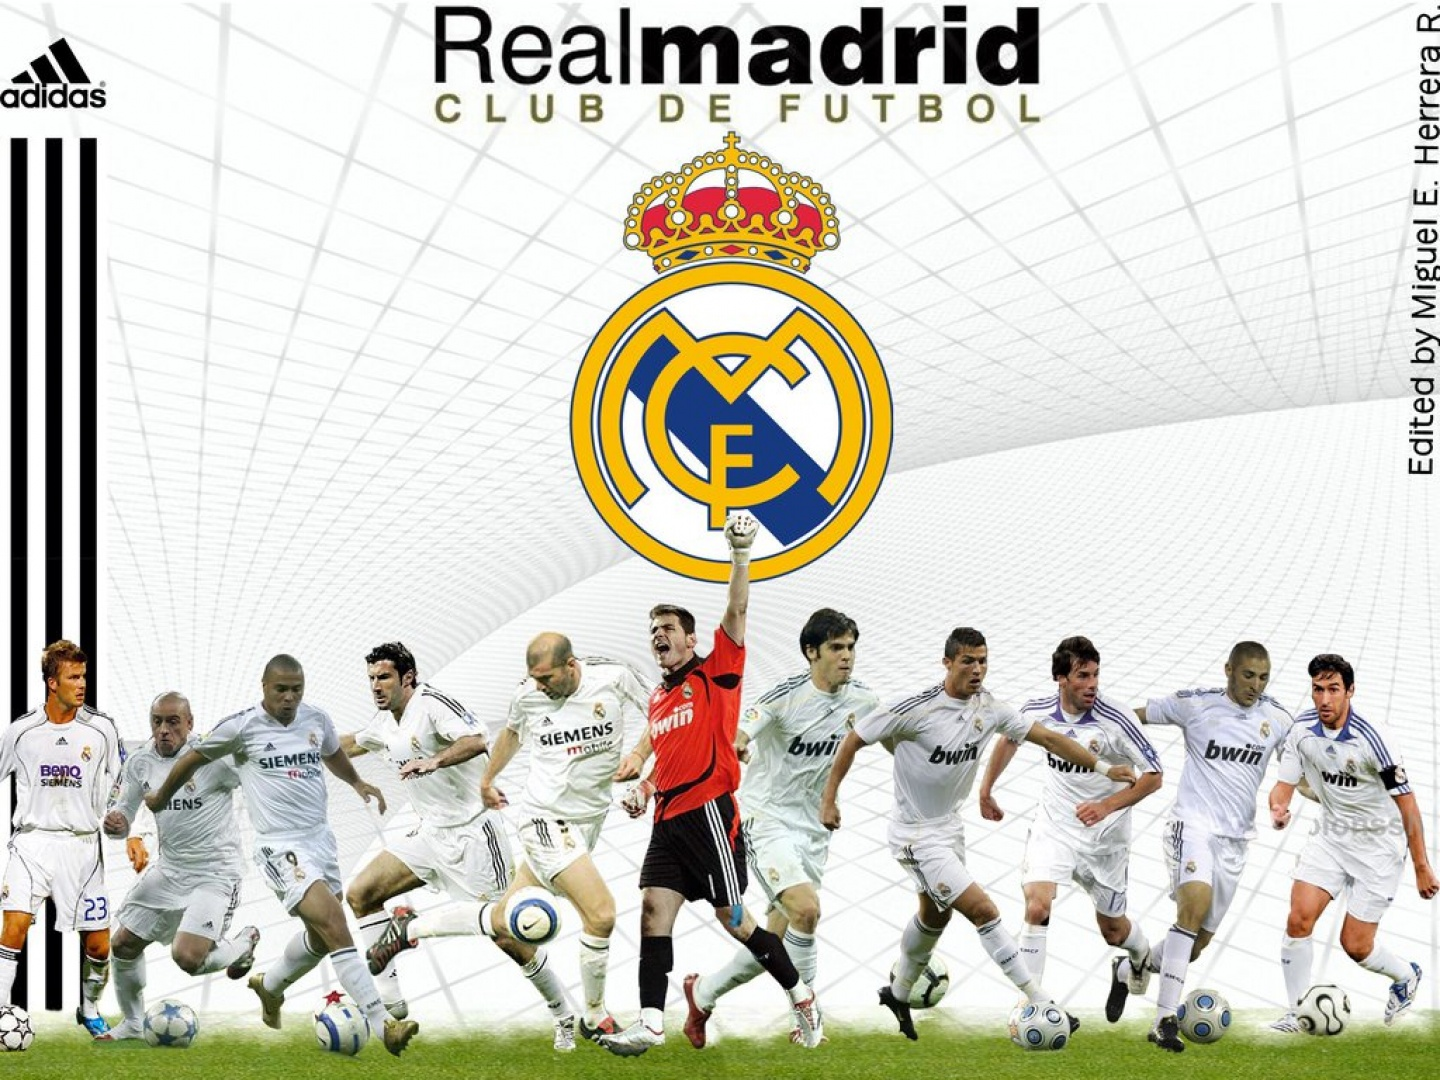 REAL MADRID     FONDOS DE ESCRITORIO